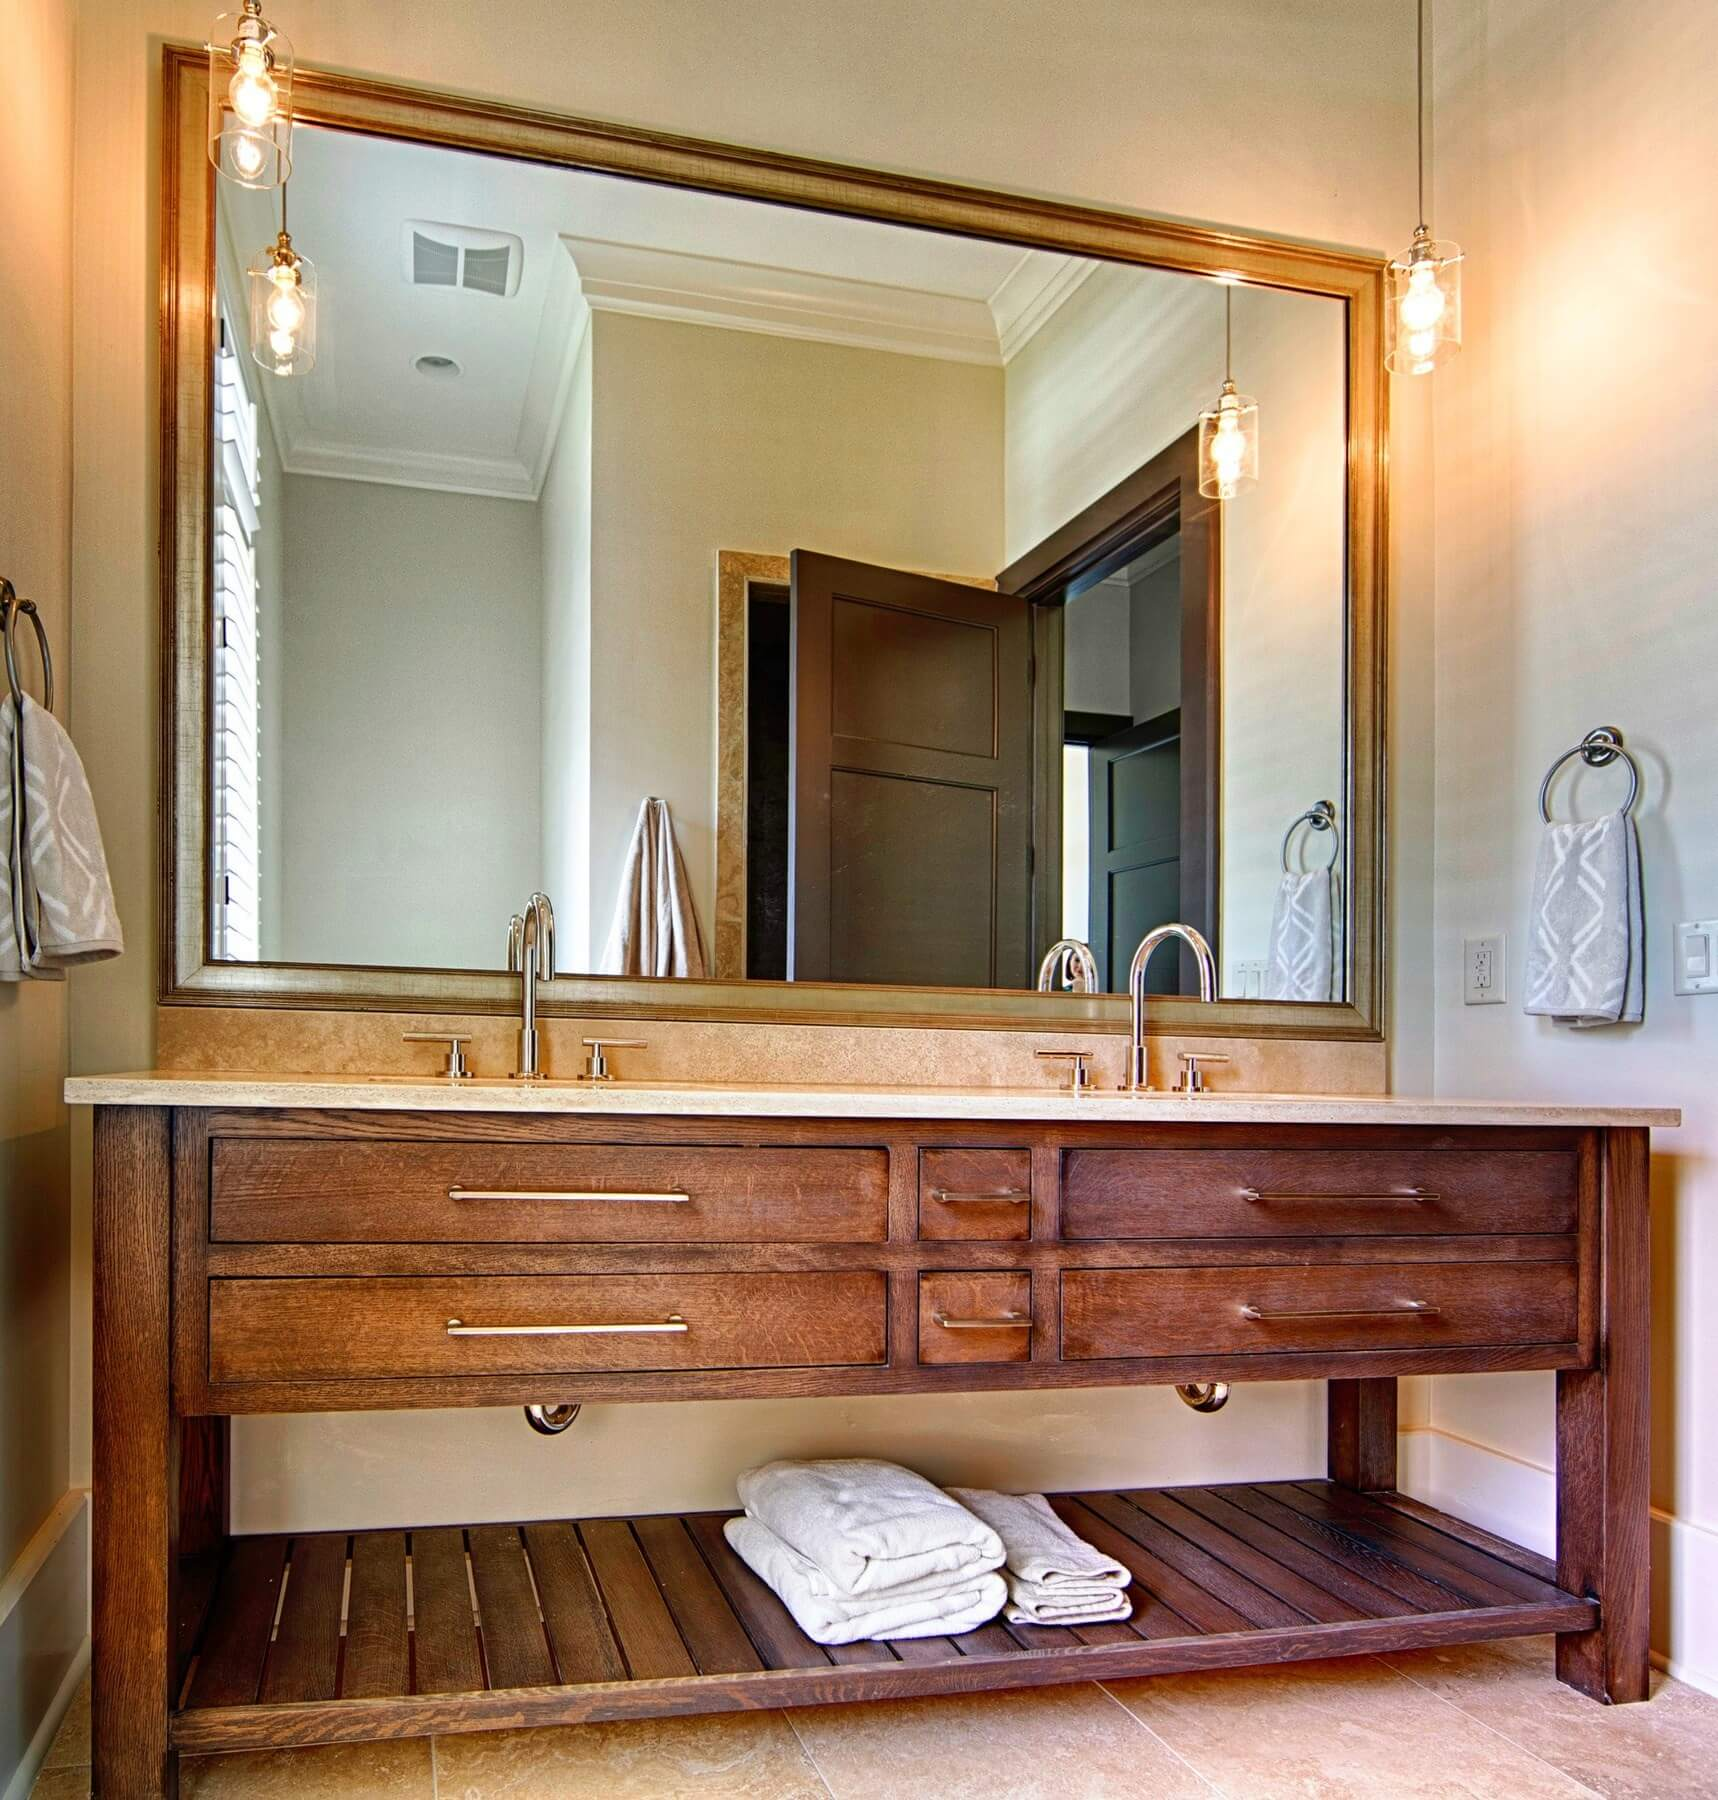 Stunning vanity by Toulmin Cabinetry. Learn more here.